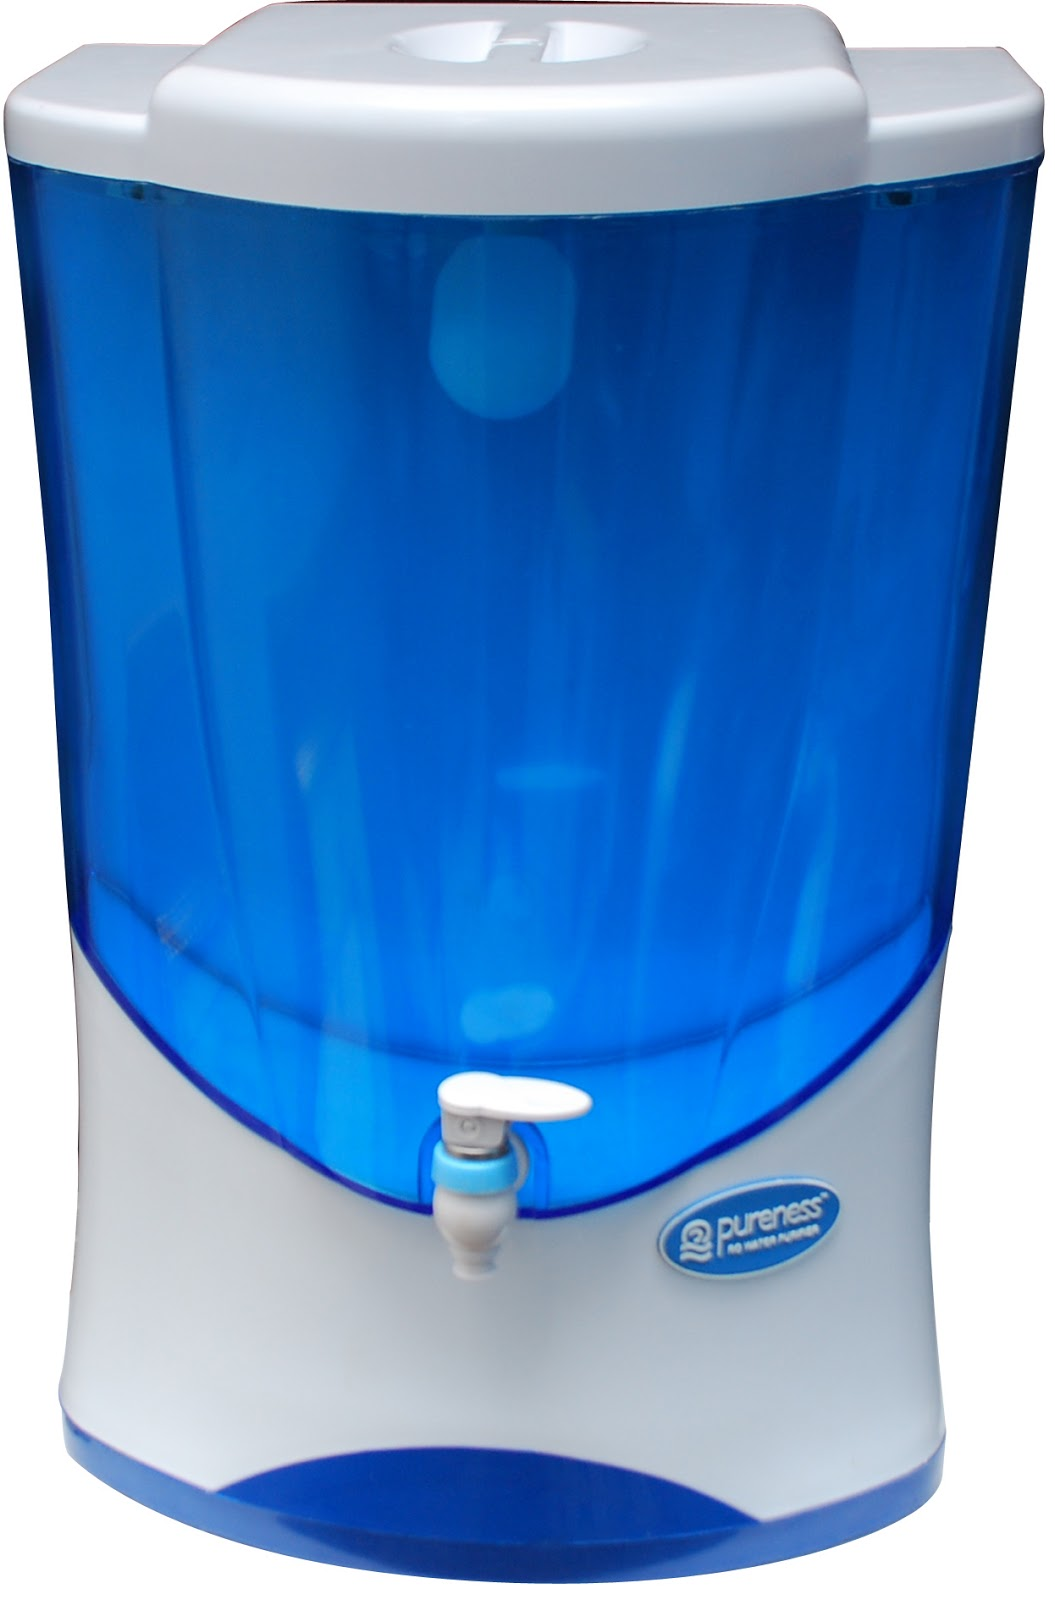 solar water purifier Solar water purifier introduction distillation is one of many processes available for water purification, and sunlight is one of several forms of heat energy that can be used to power that process sunlight has the advantage of zero fuel cost but it requires more space (for its collection) and generally more costly equipment.